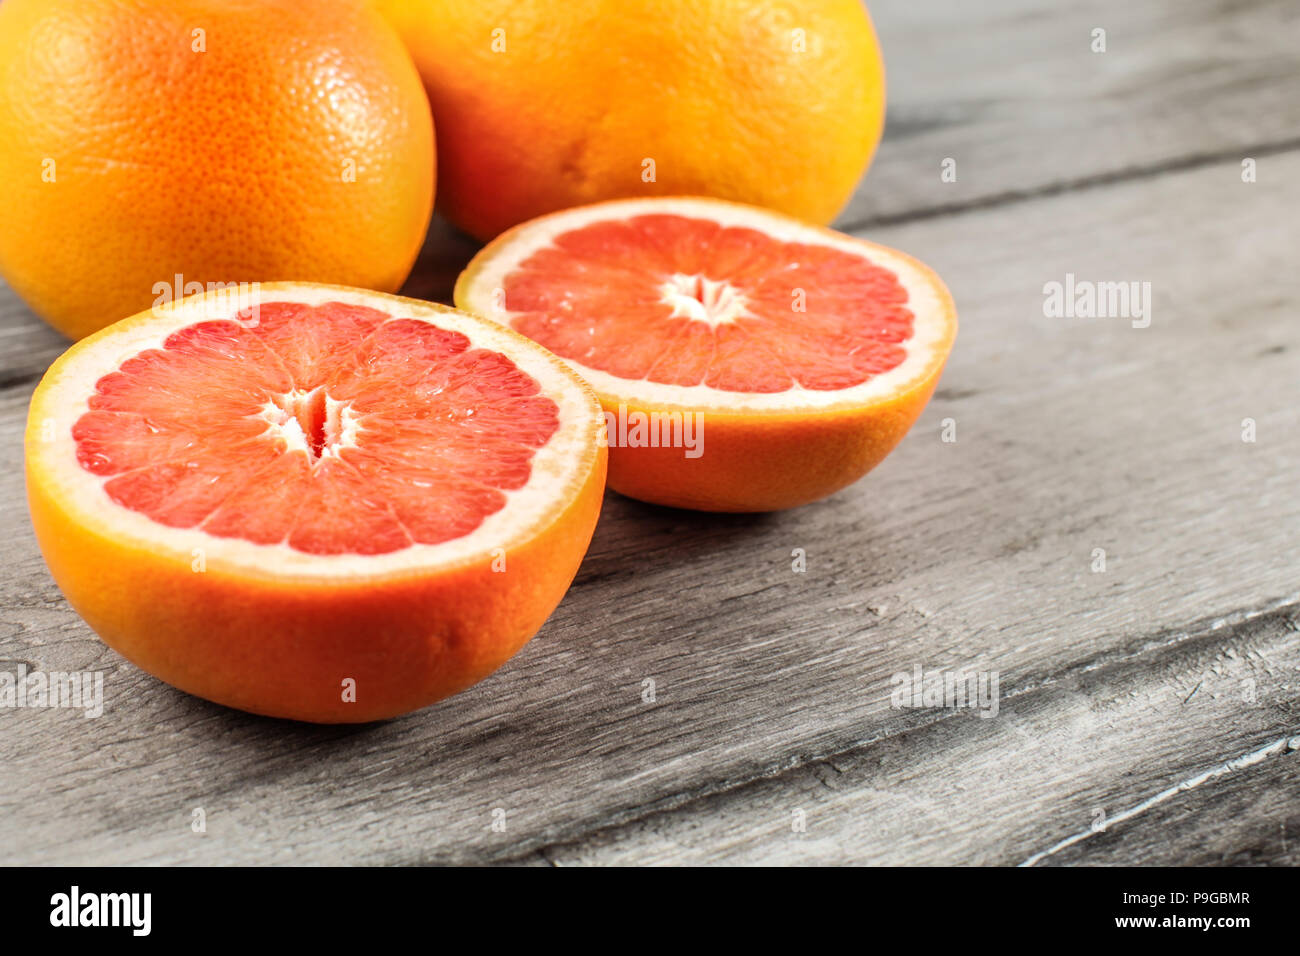 Pink red grapefruit cut in half, with two whole in background on gray wood table. - Stock Image